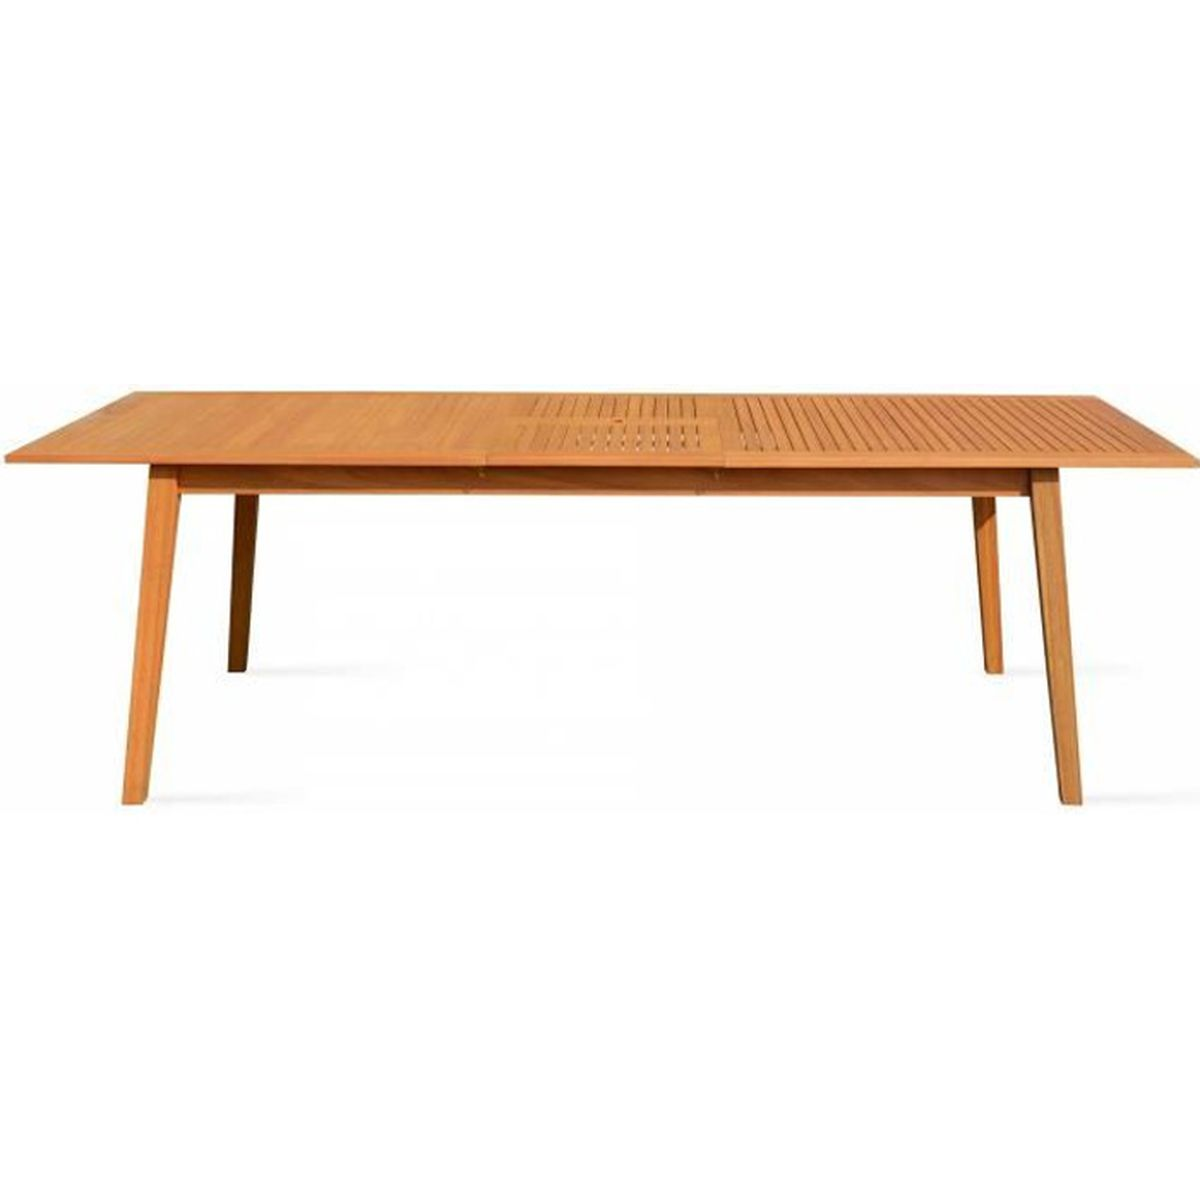 Table de jardin extensible 200 - 250 cm - Achat / Vente table de ...